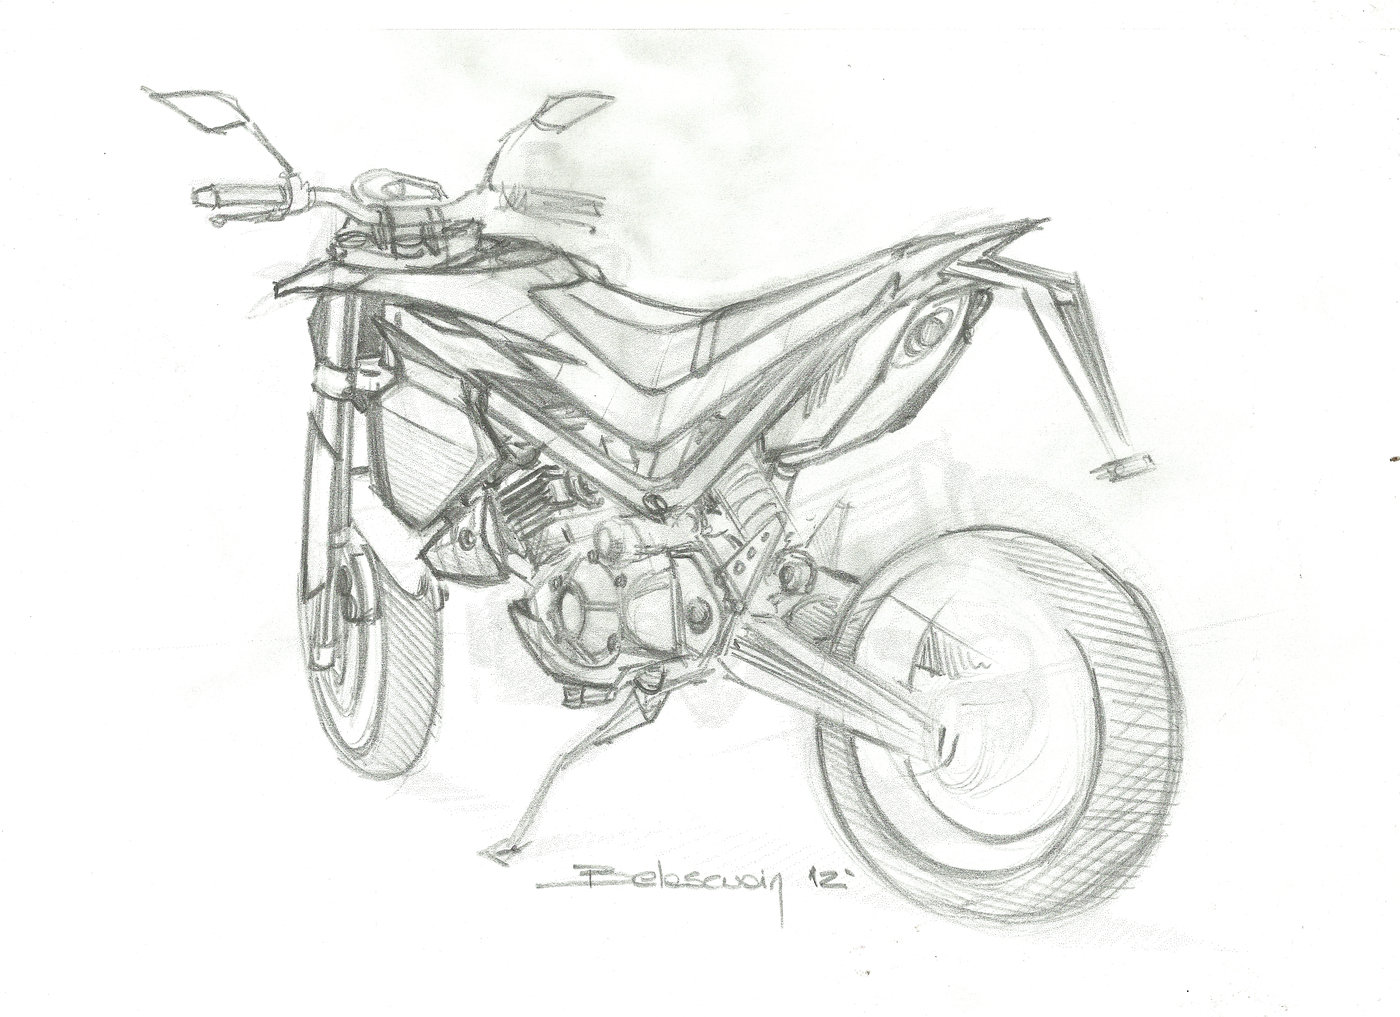 Husqvarna Supermotard by Miguel Belascuain at Coroflot.com